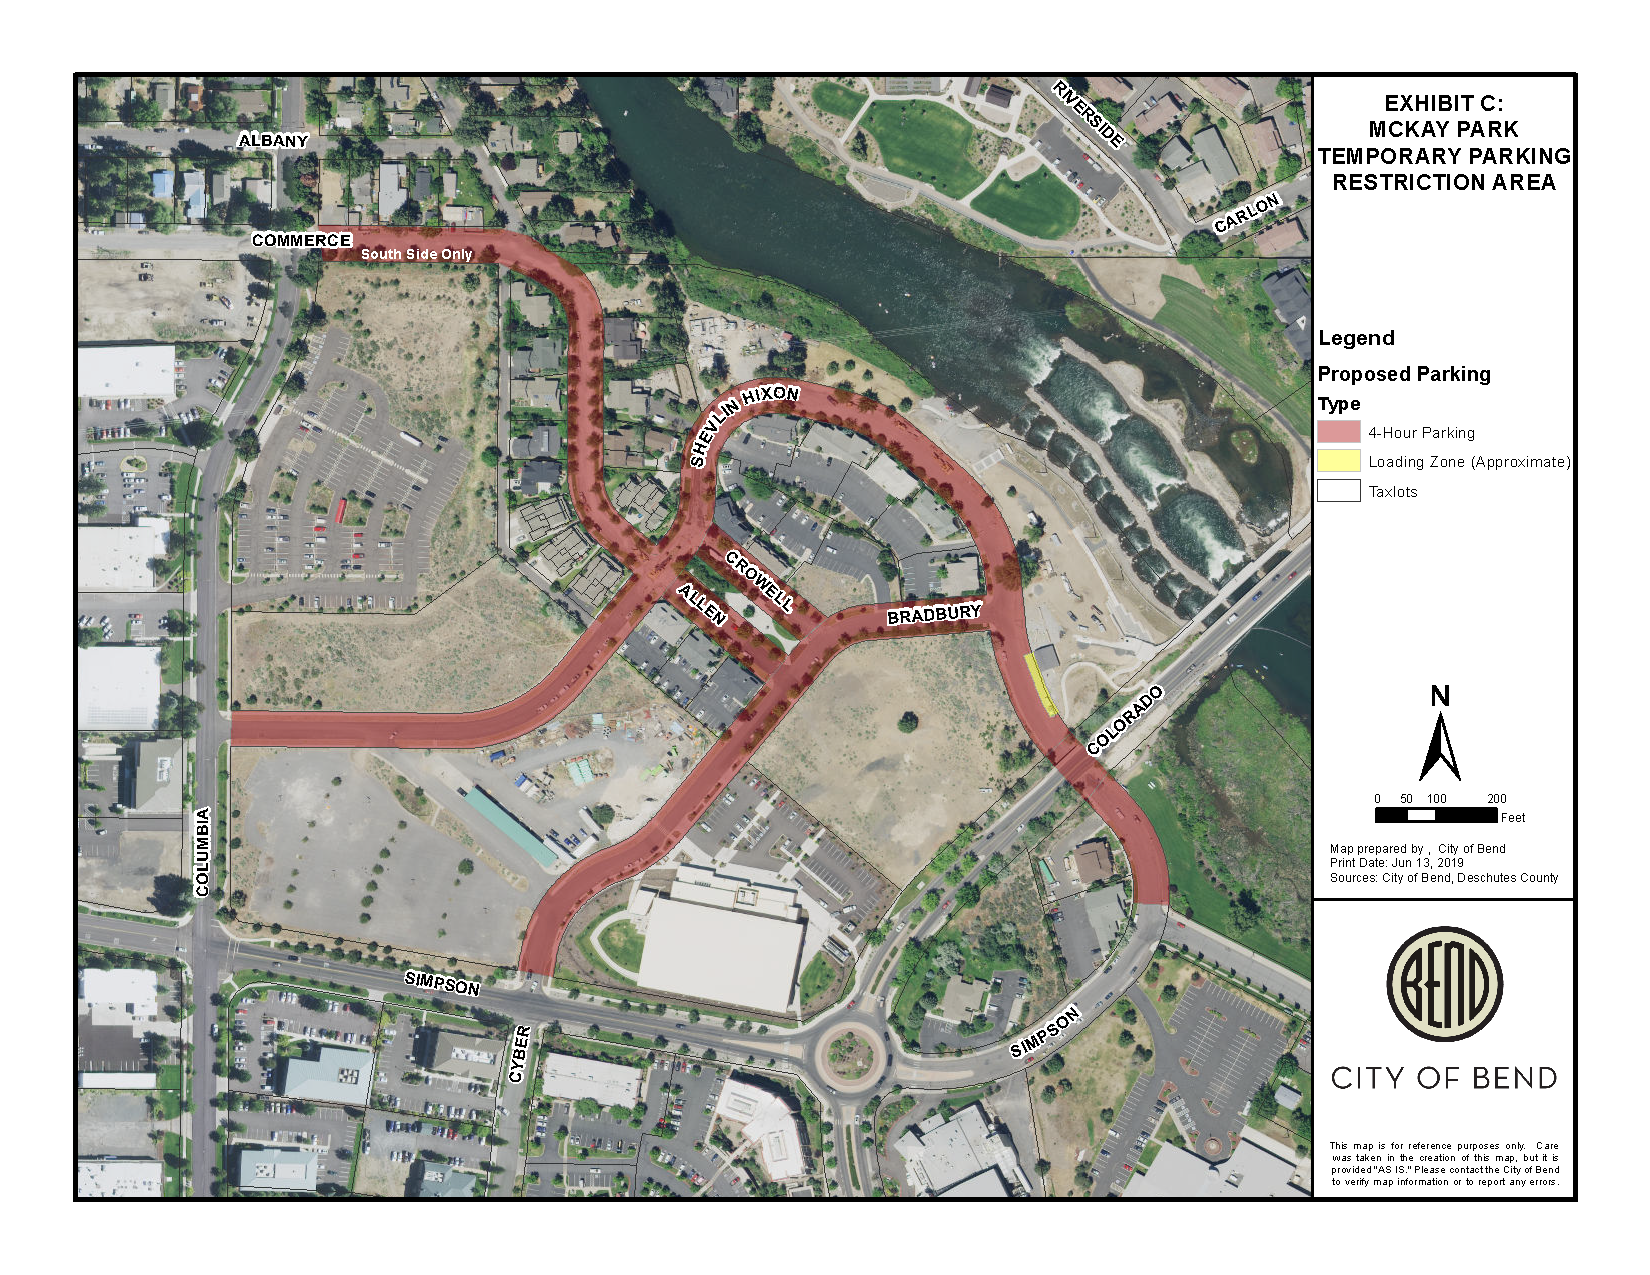 McKay Parking temporary parking restrictions